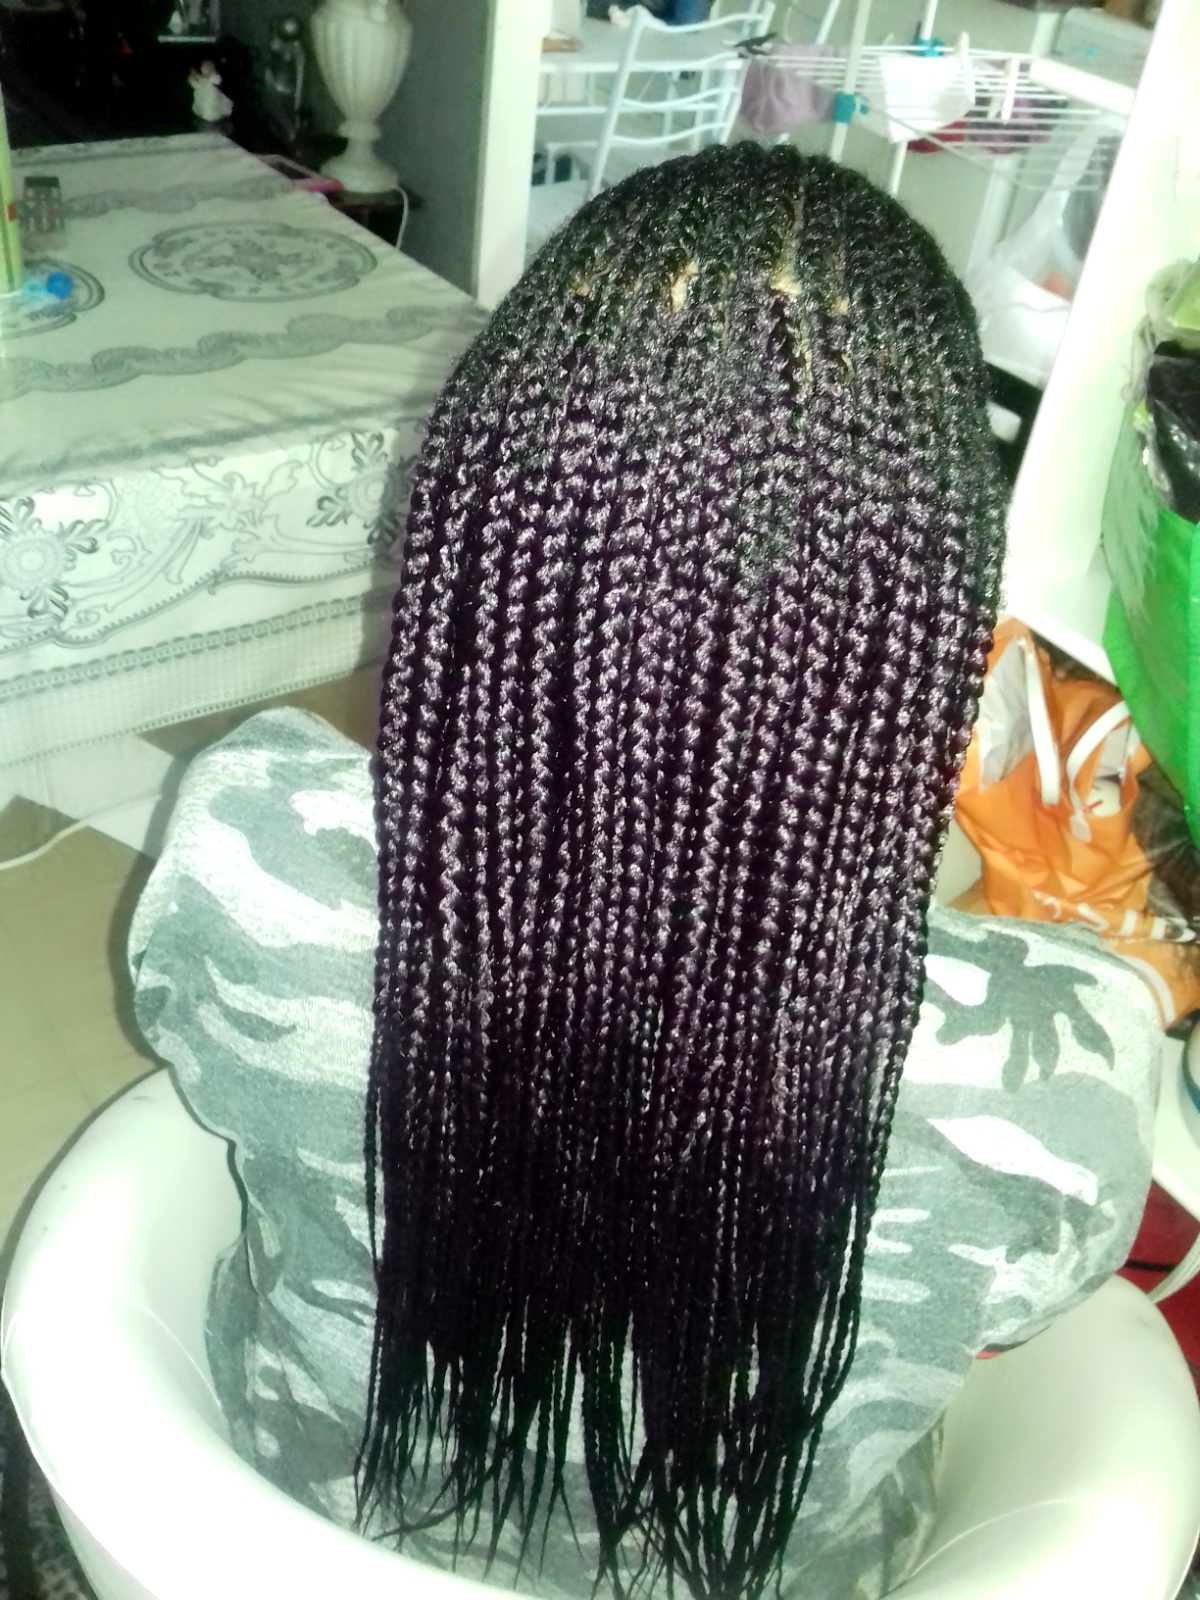 salon de coiffure afro tresse tresses box braids crochet braids vanilles tissages paris 75 77 78 91 92 93 94 95 QCWEPFQI